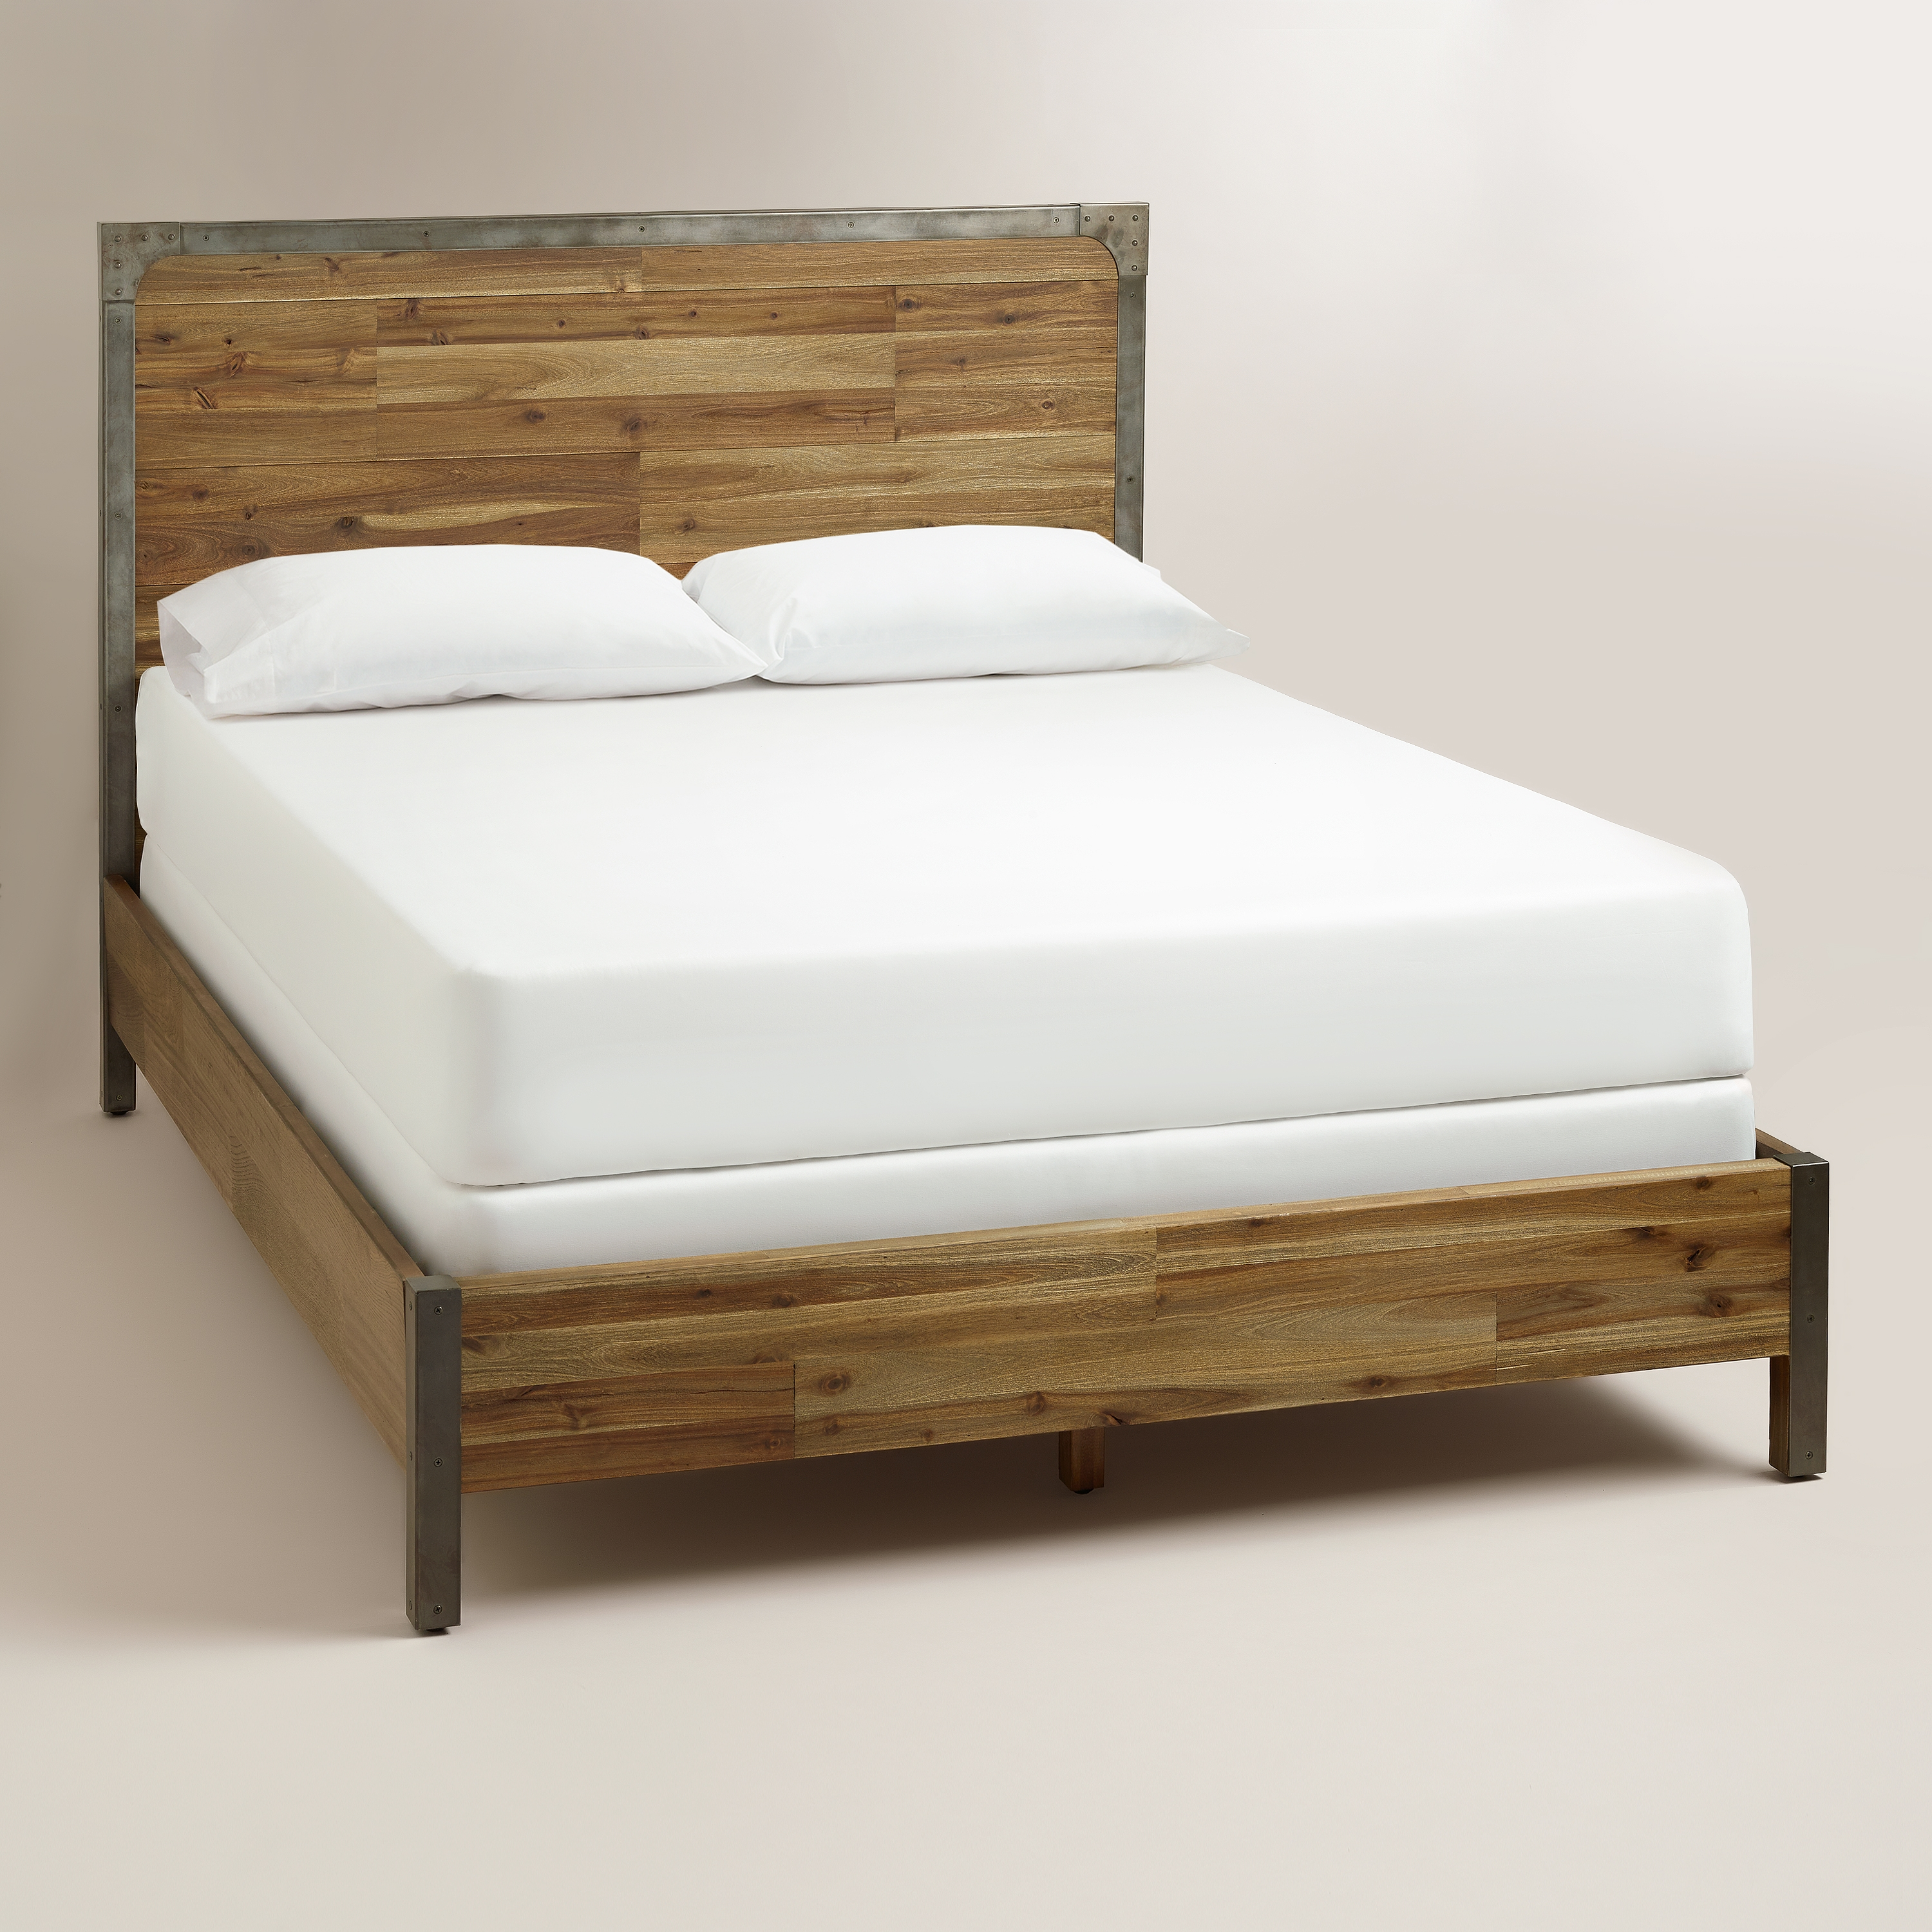 Permalink to Wood Bed Frames With Headboard